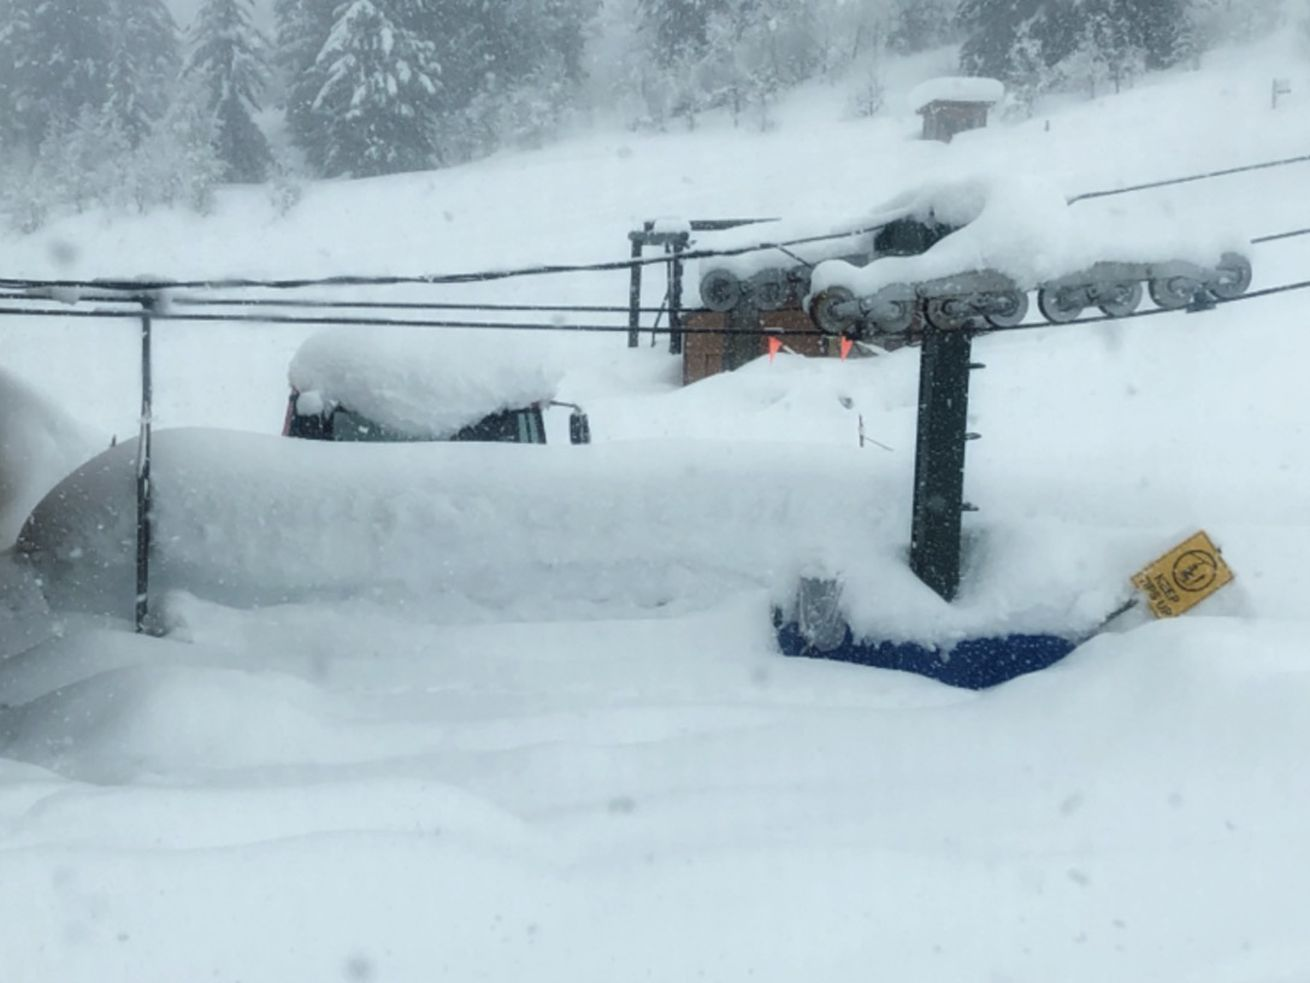 Idaho ski area closes because of too much snow